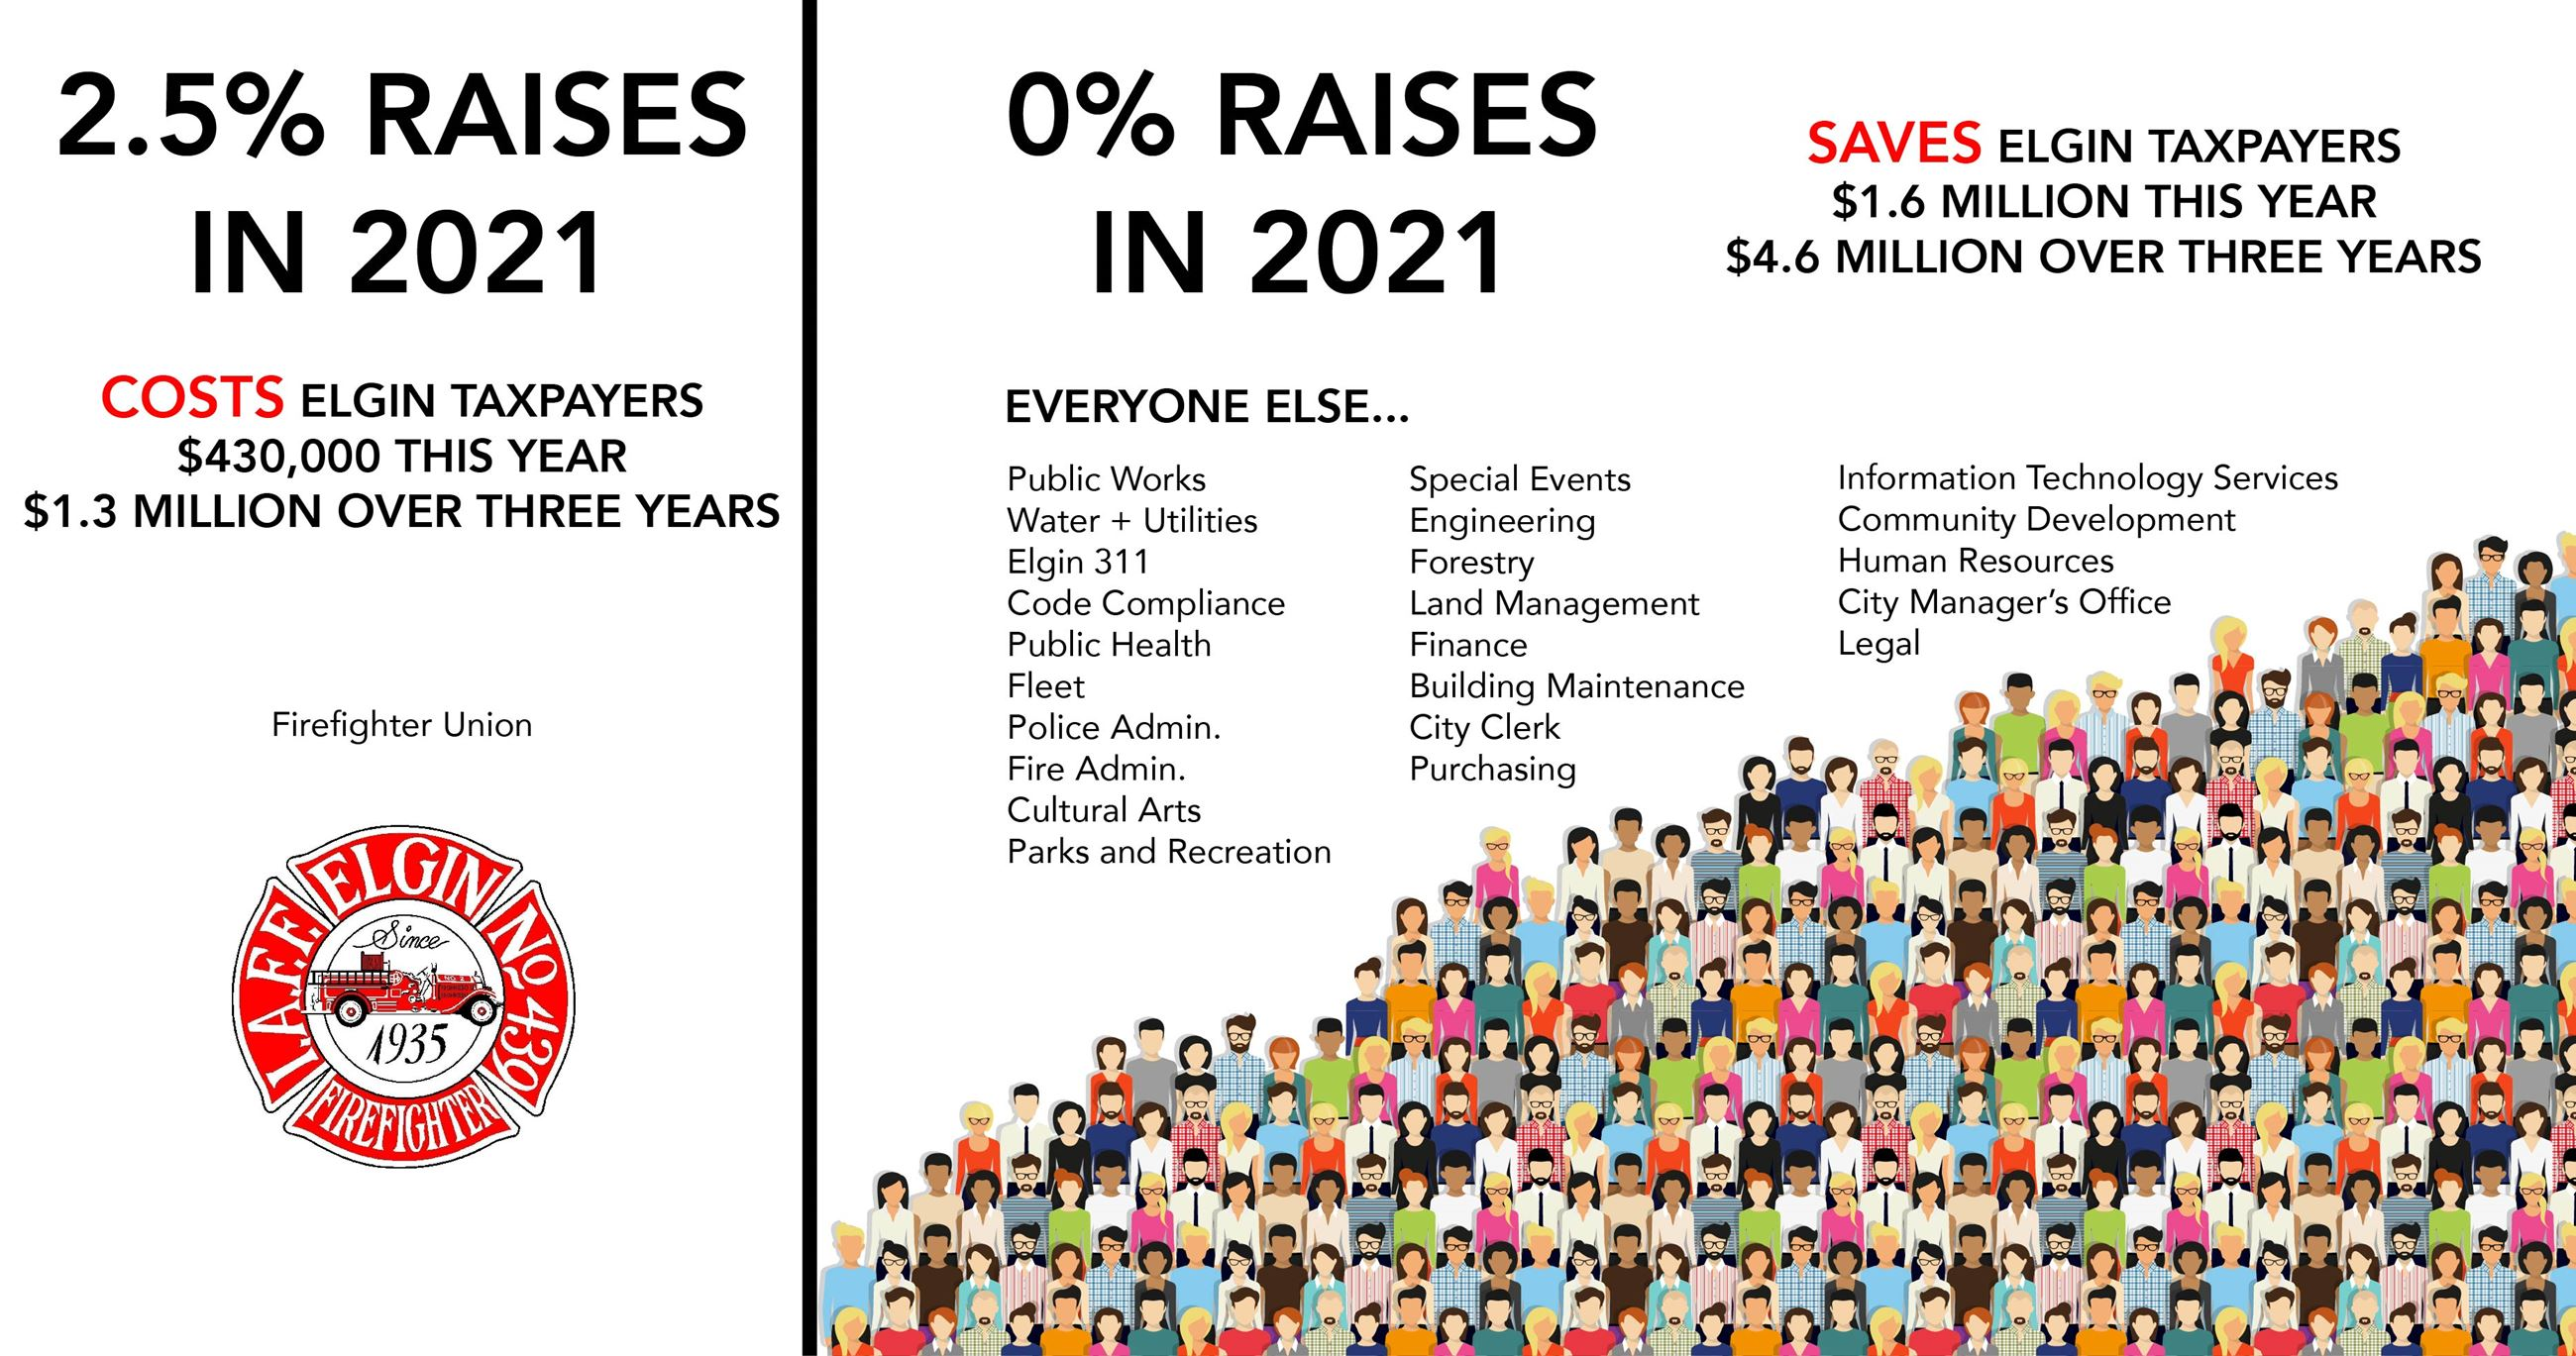 2021 raises infographic-01 Opens in new window